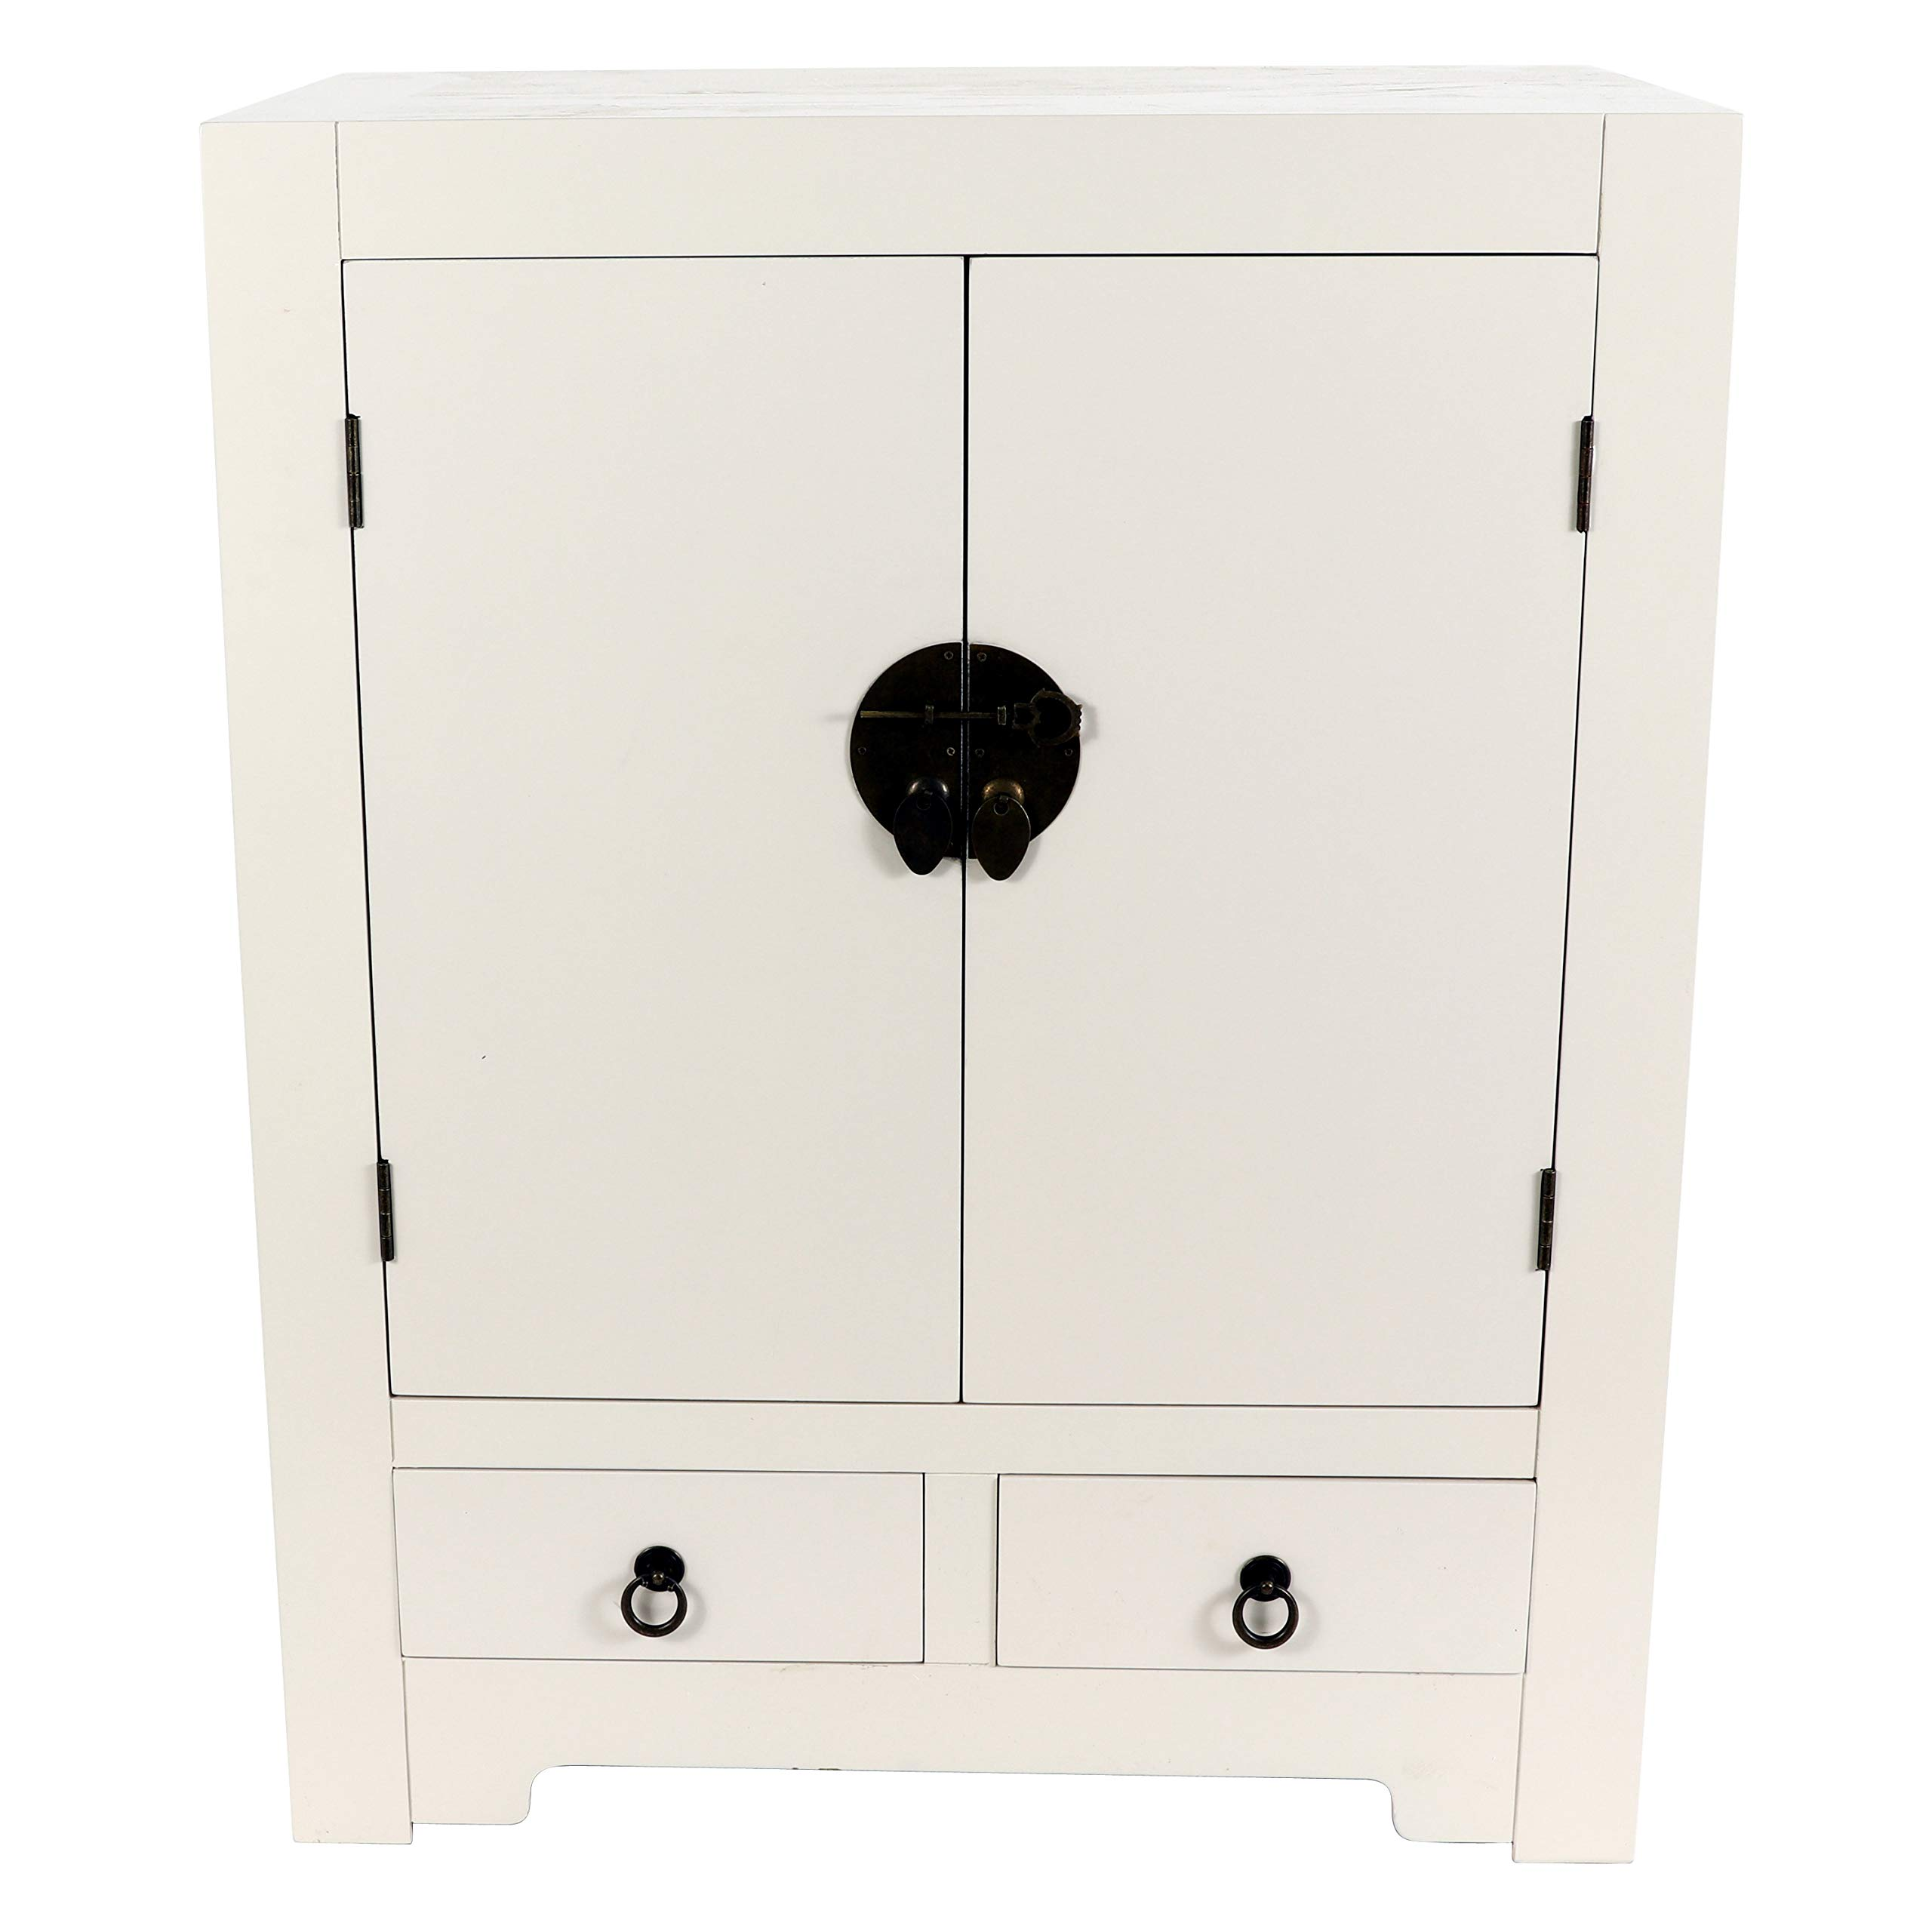 Decor Therapy FR8708 Accent Cabinet, White